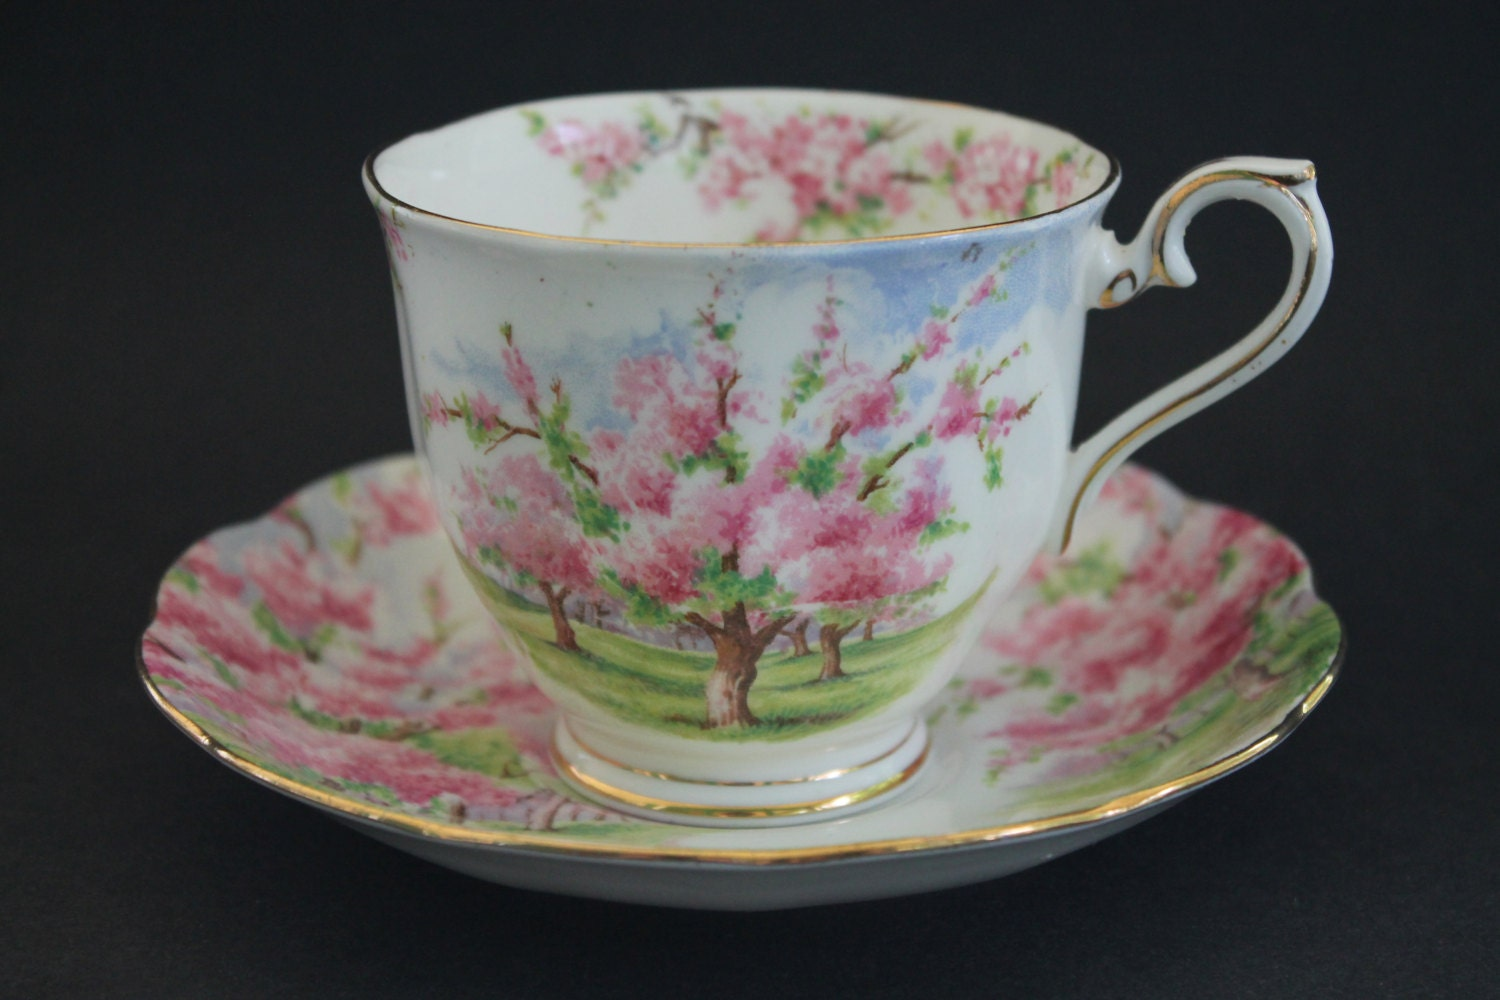 royal albert bone china teacup and saucer set blossom. Black Bedroom Furniture Sets. Home Design Ideas